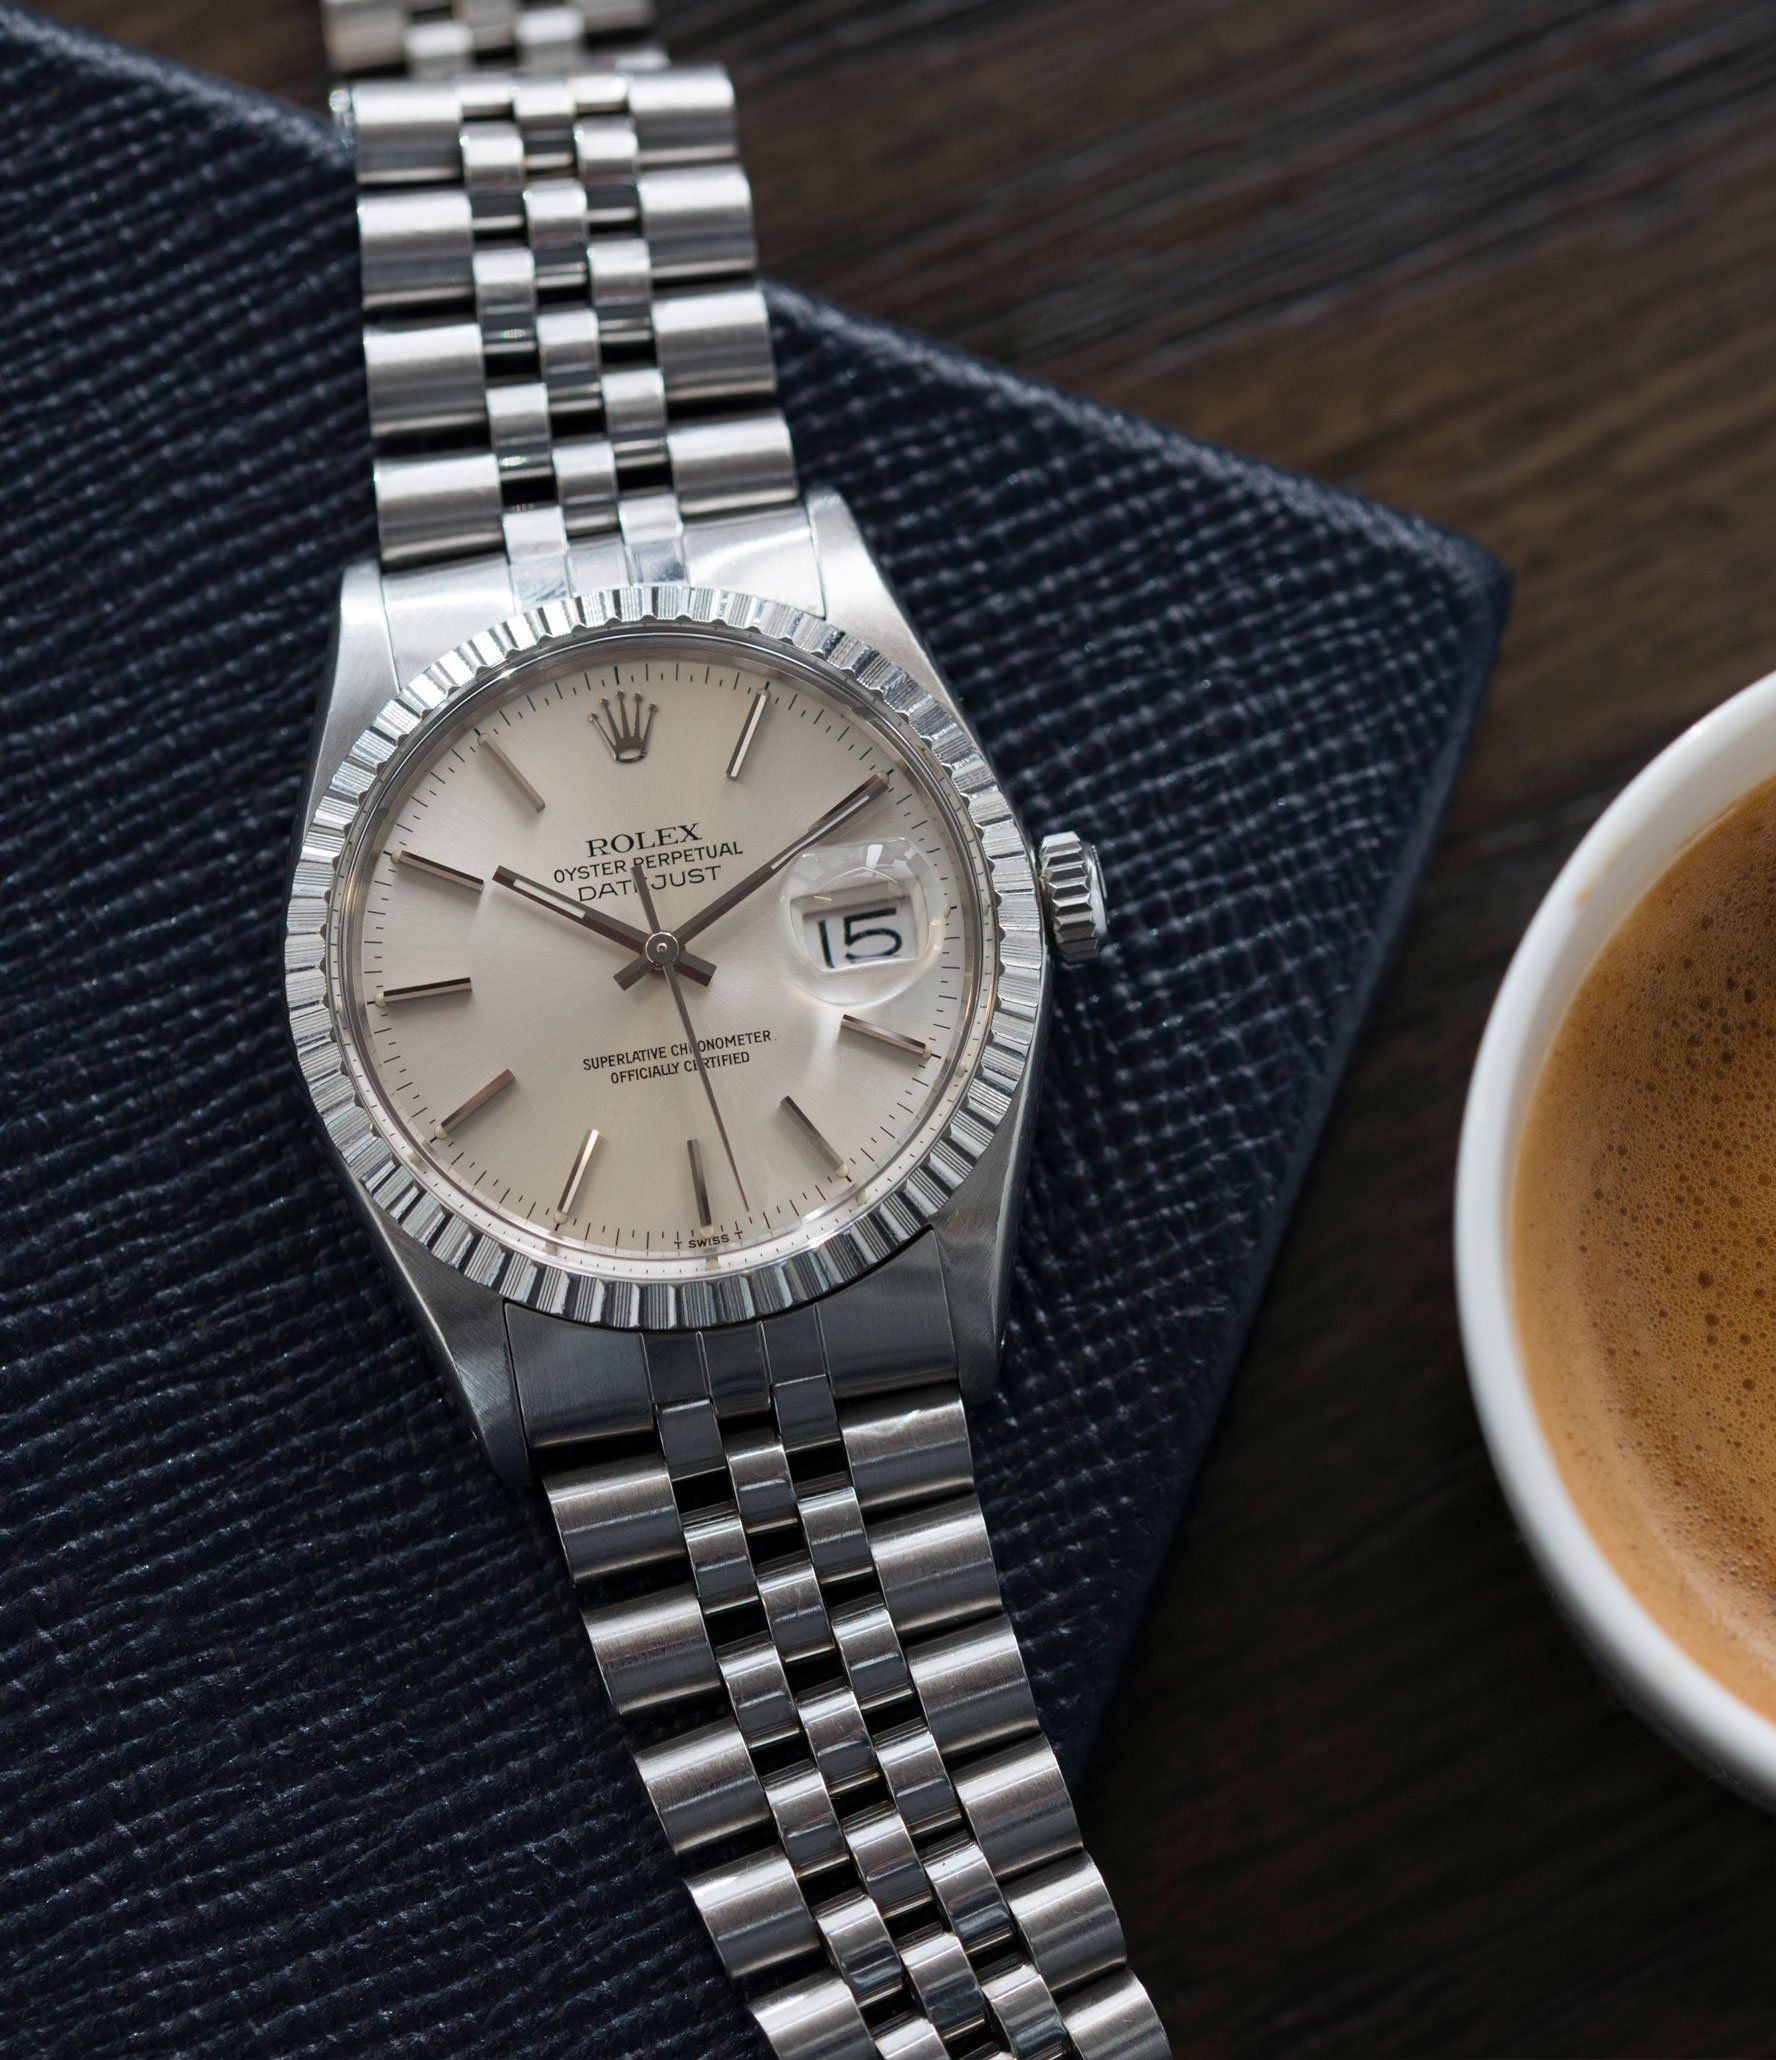 f798270ca54 Rolex Datejust 16030 steel automatic silver dial watch Jubilee bracelet at  A Collected Man London